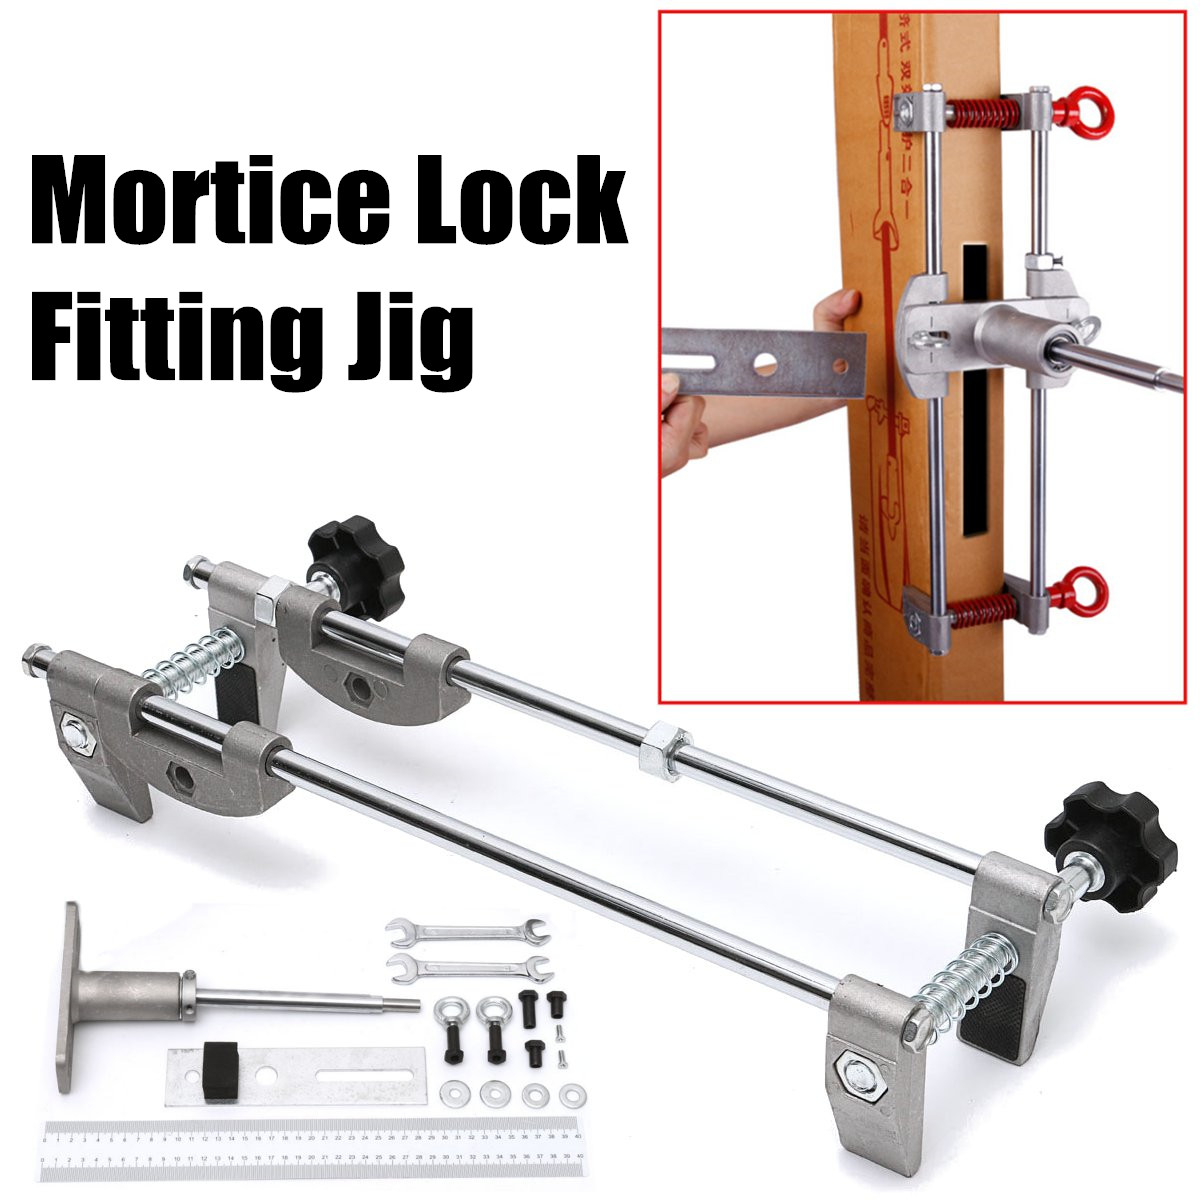 Professional Locksmith Woodworking Door Lock Mortiser Kit Hole Saw Opener Installation Mortising Jig Tool Maintenance Set цена 2017